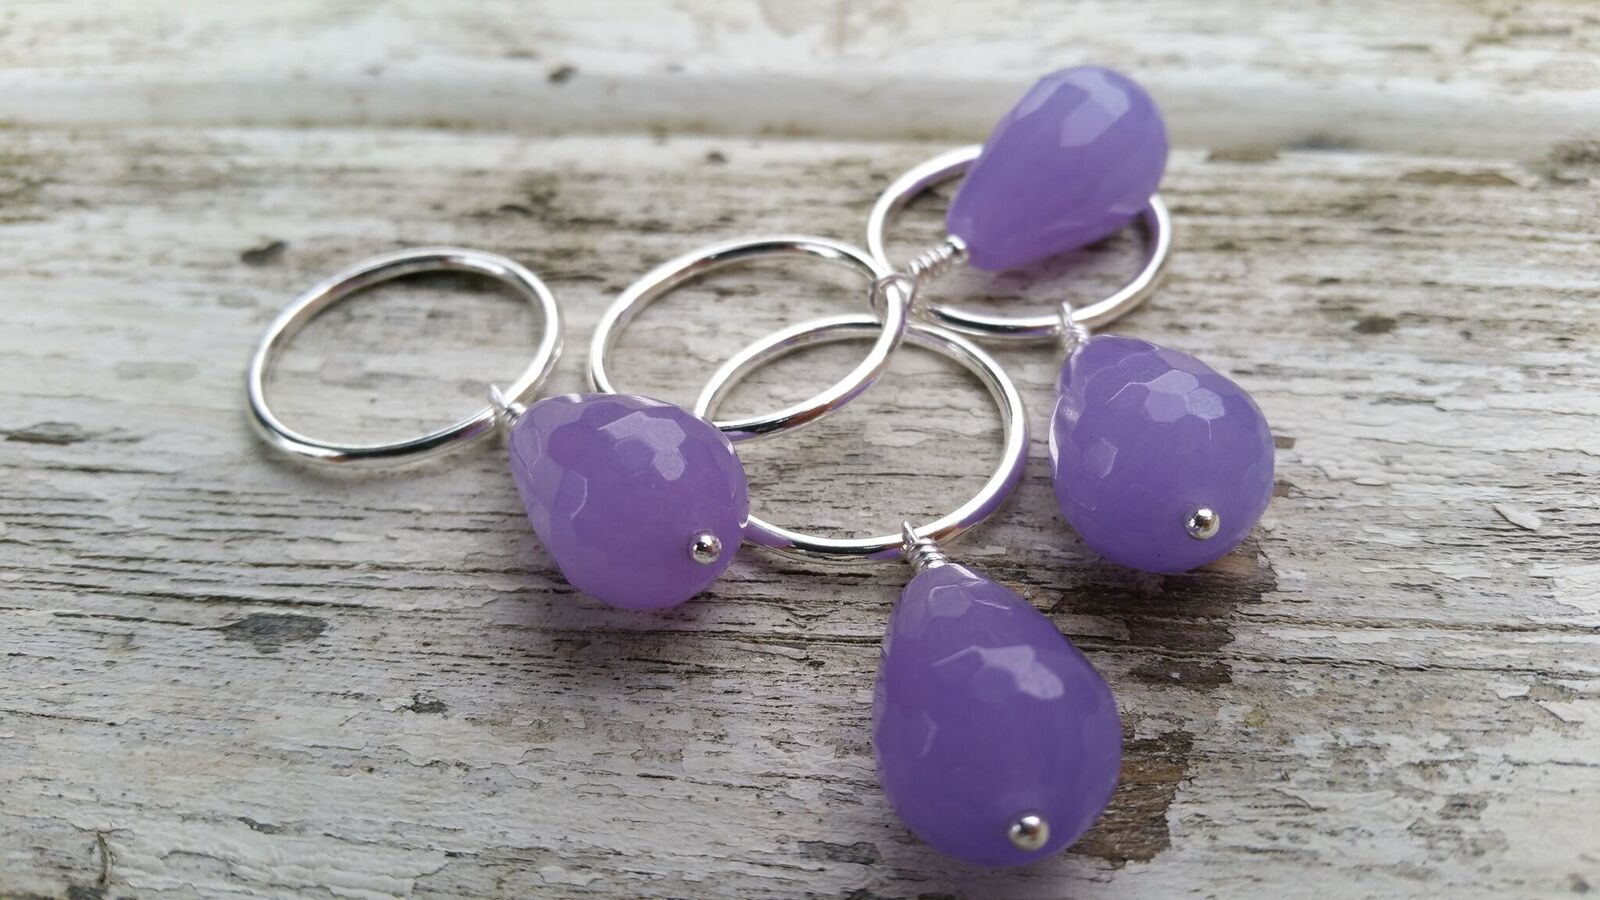 Snag Free Stitch Markers up to 17mm